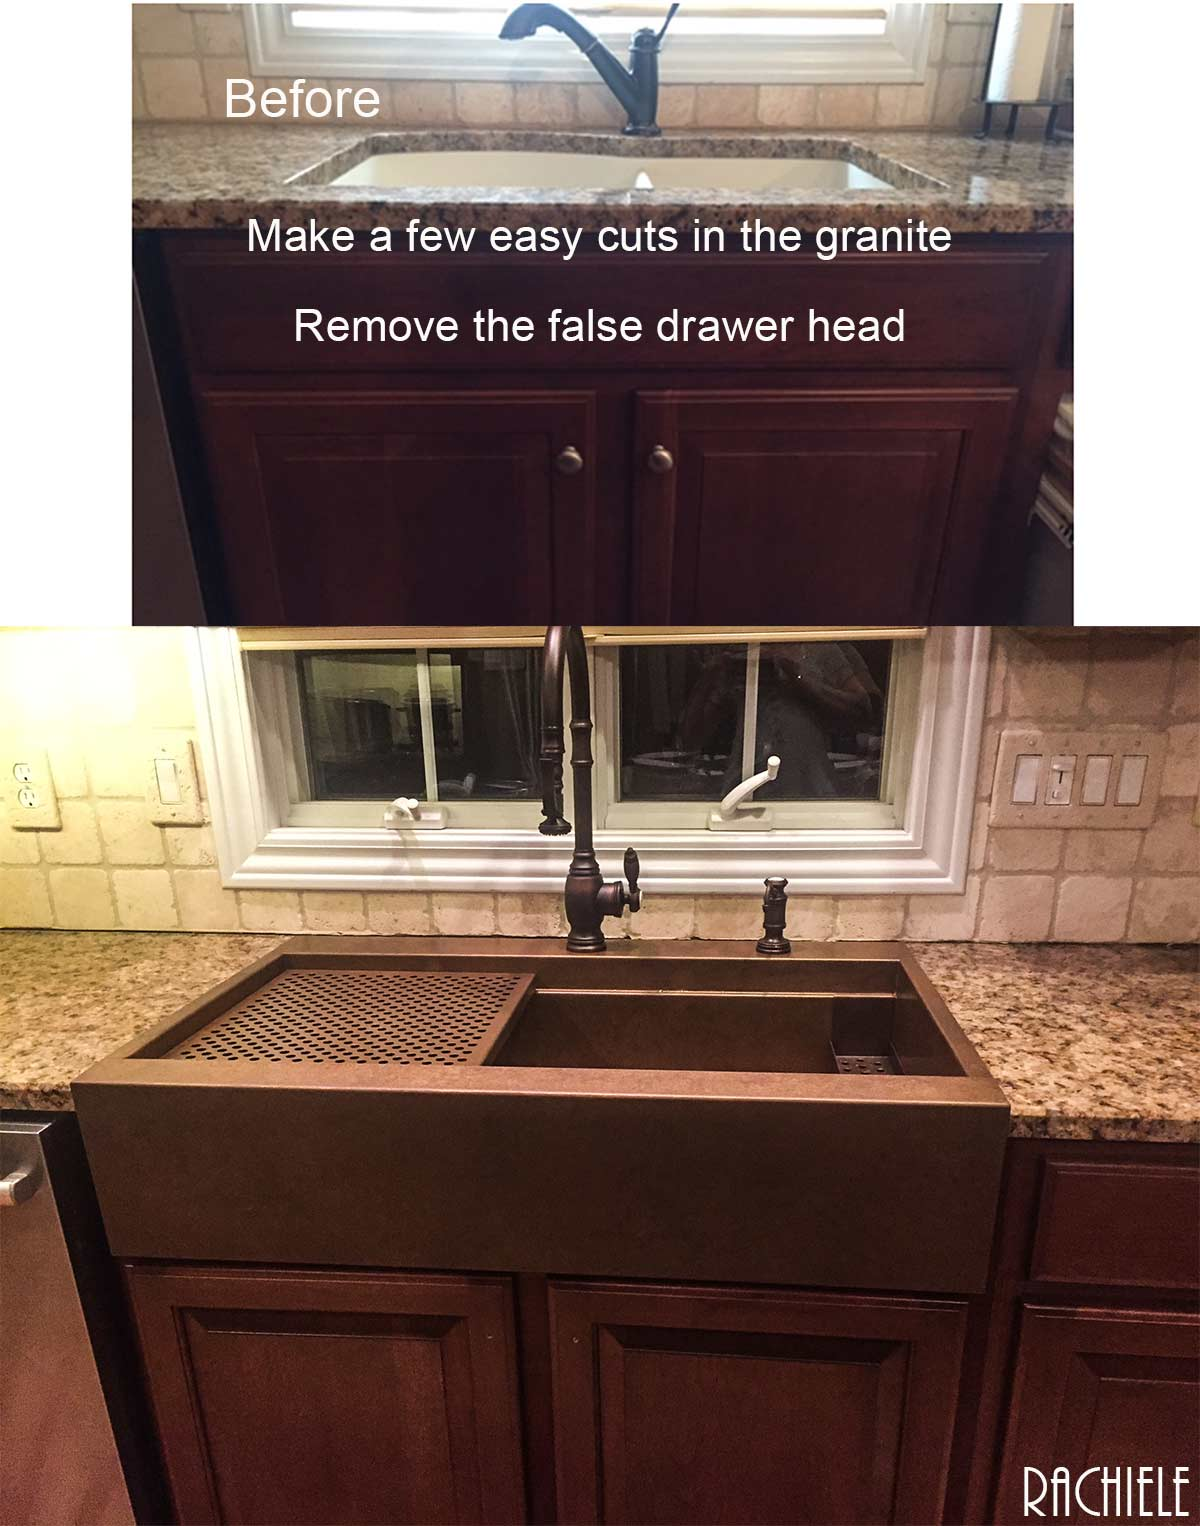 Retrofit Farmhouse Sink Custom Designed And Crafted To Fit In Existing Cabinet